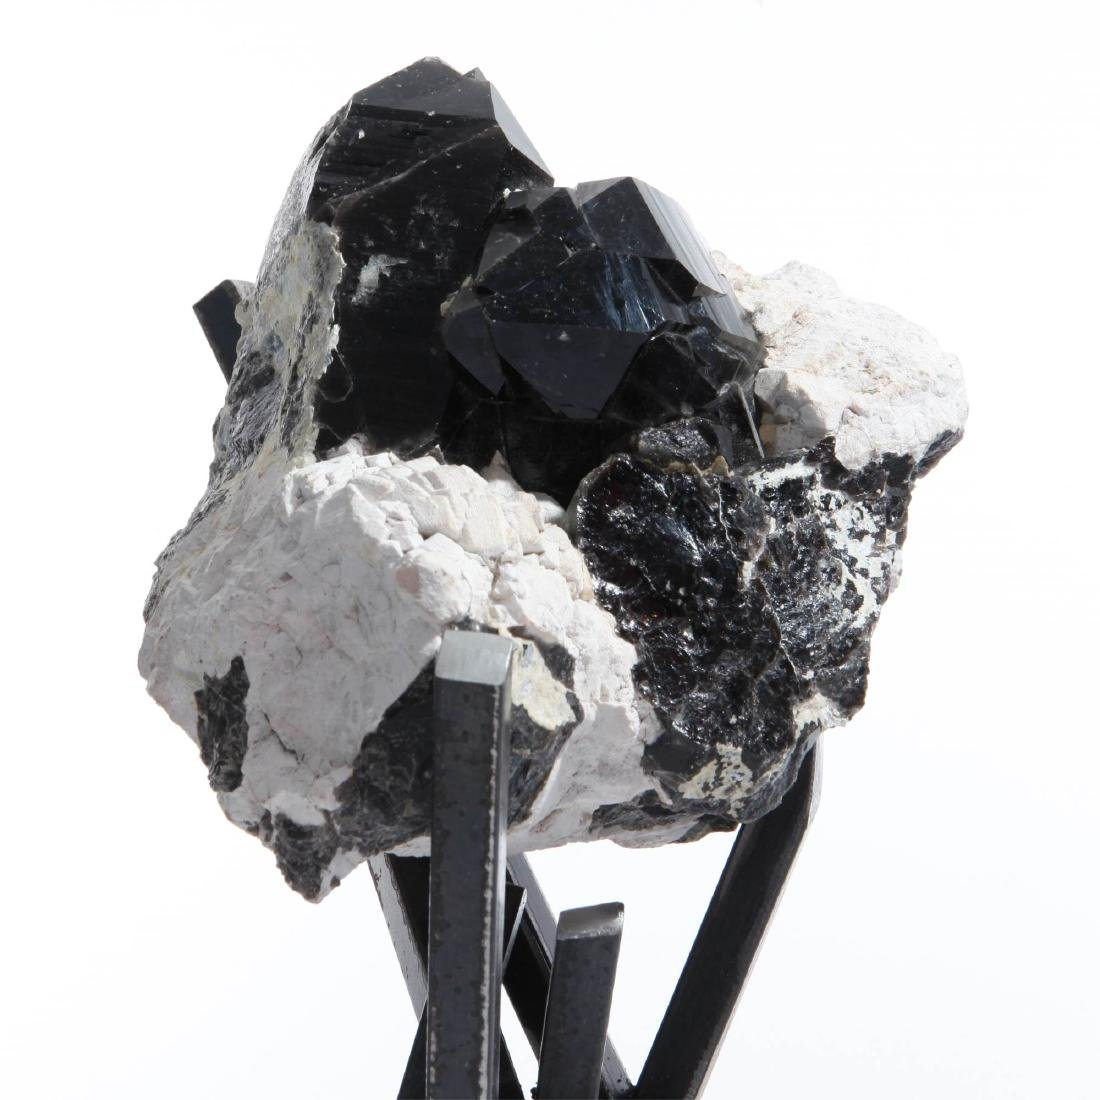 Tibetan Black Quartz Crystal Cluster on Metal Base - 5